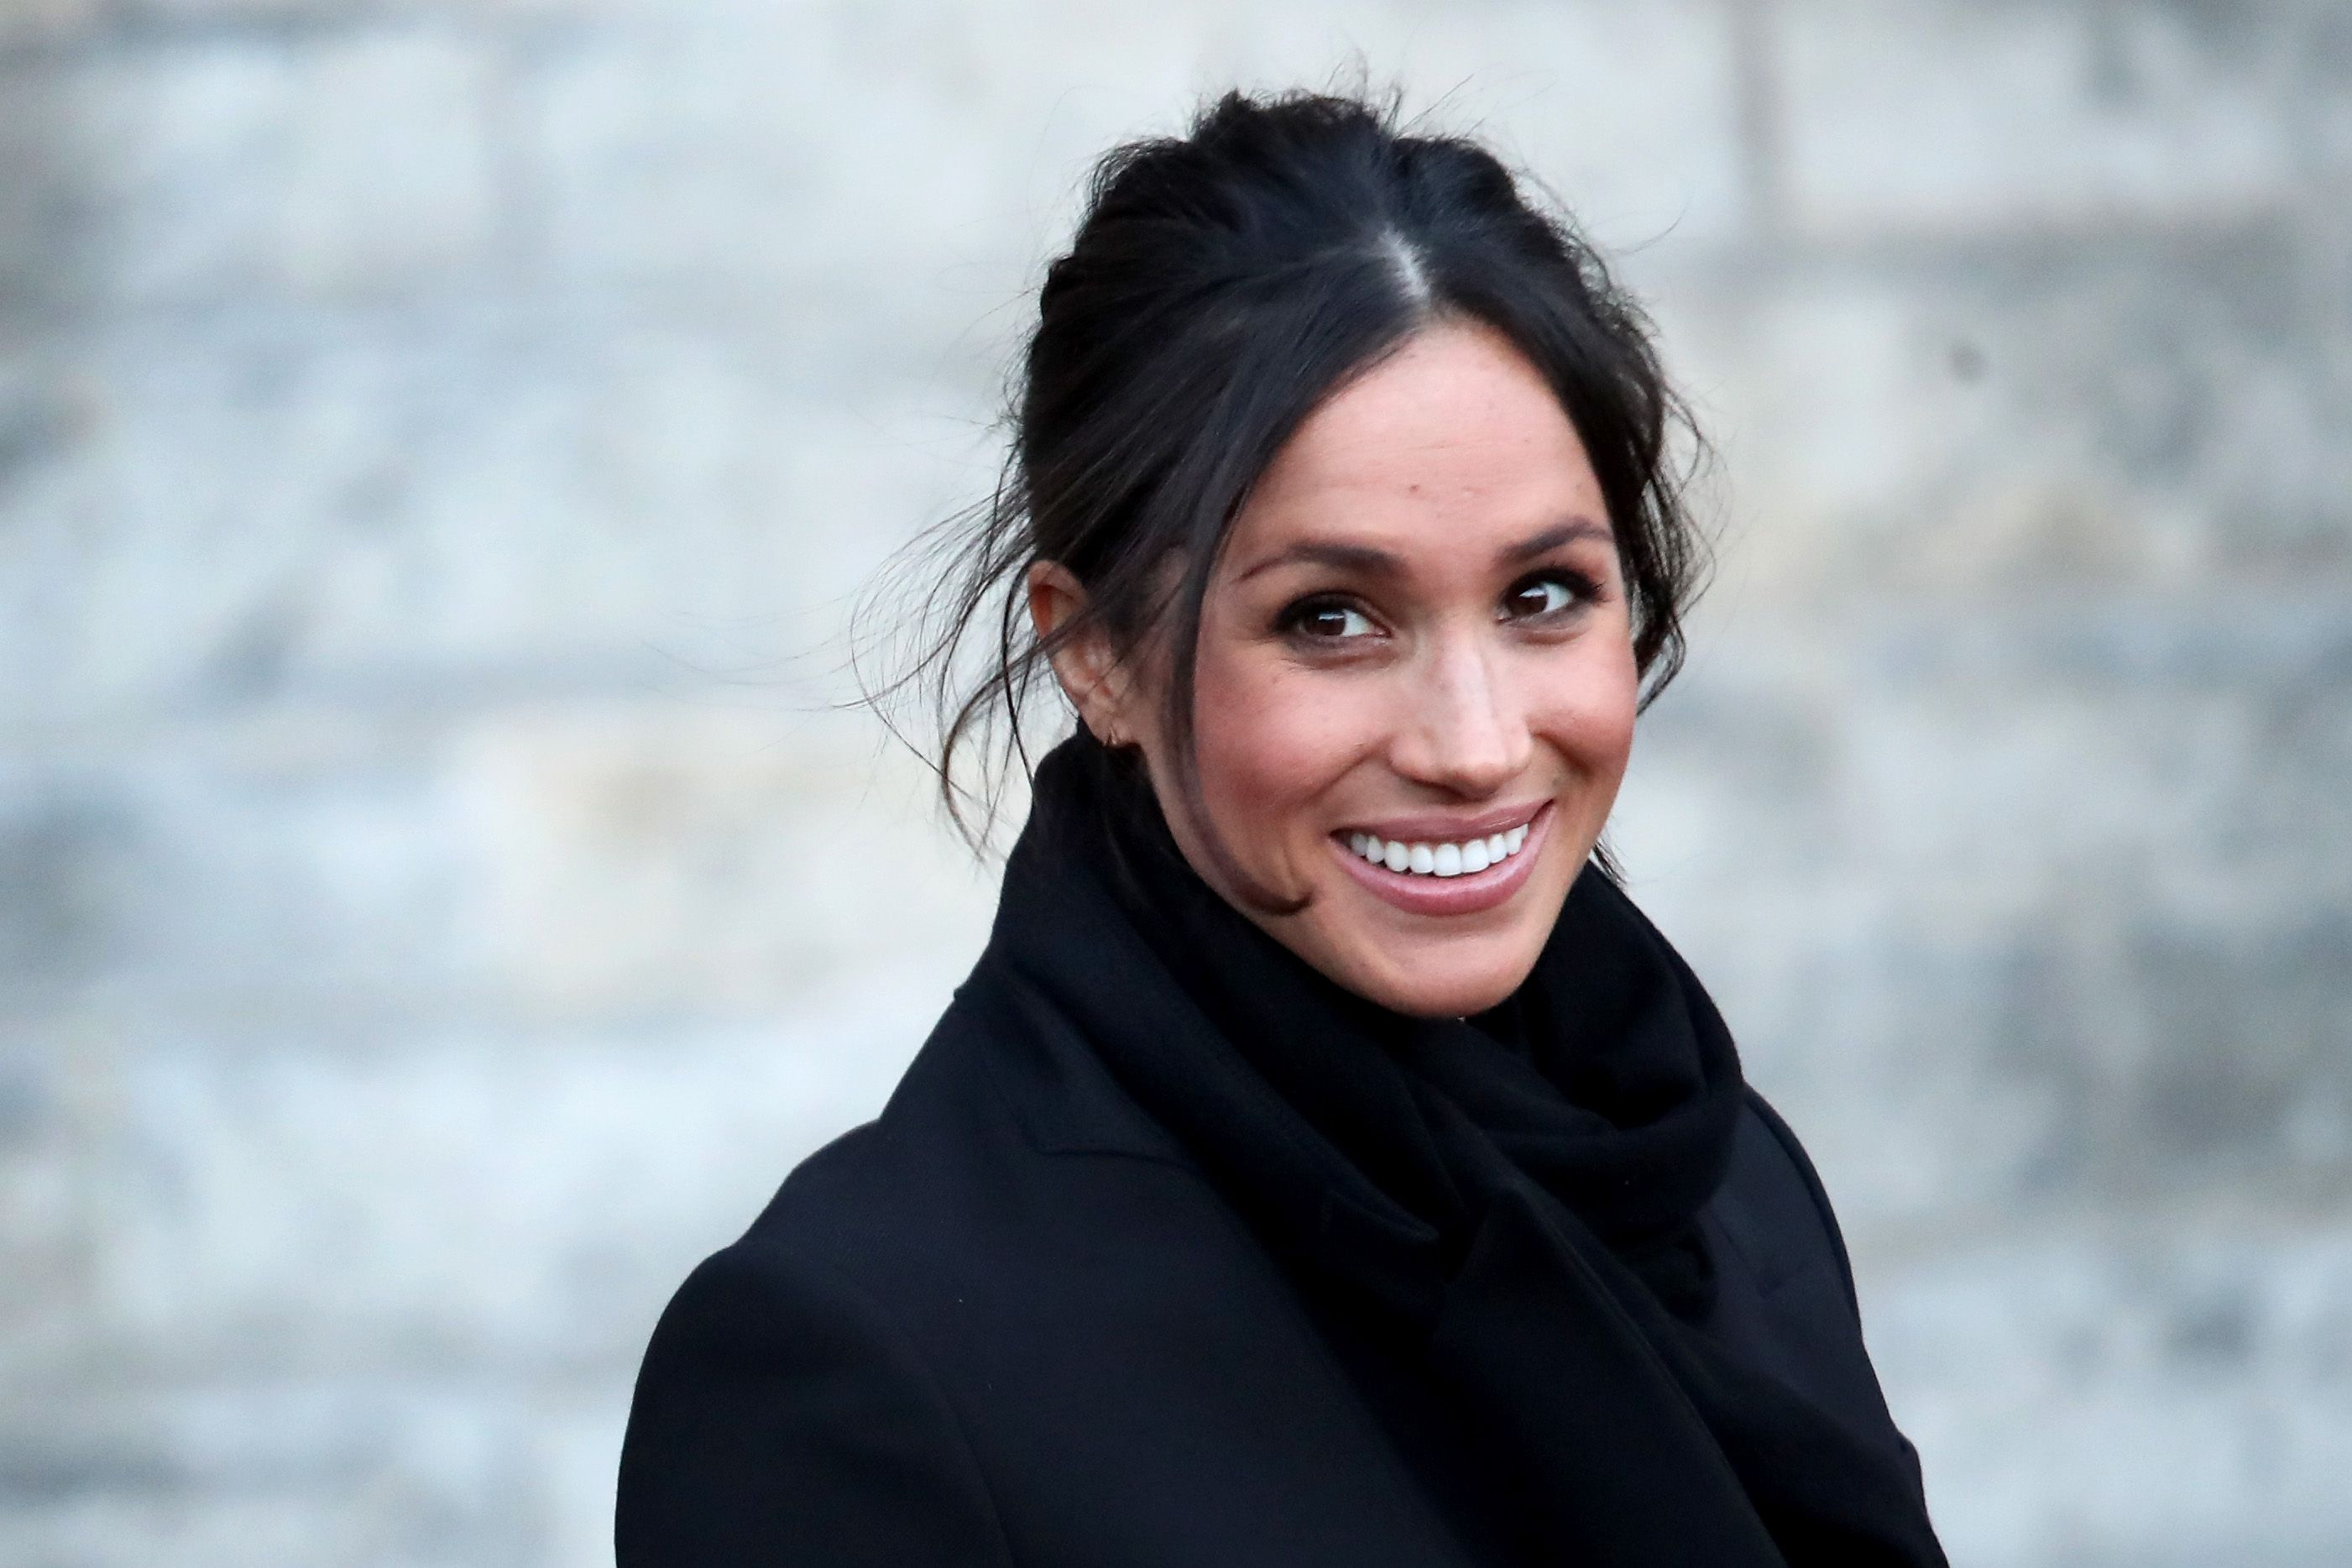 Meghan Markle and the Psychology of Media Backlash